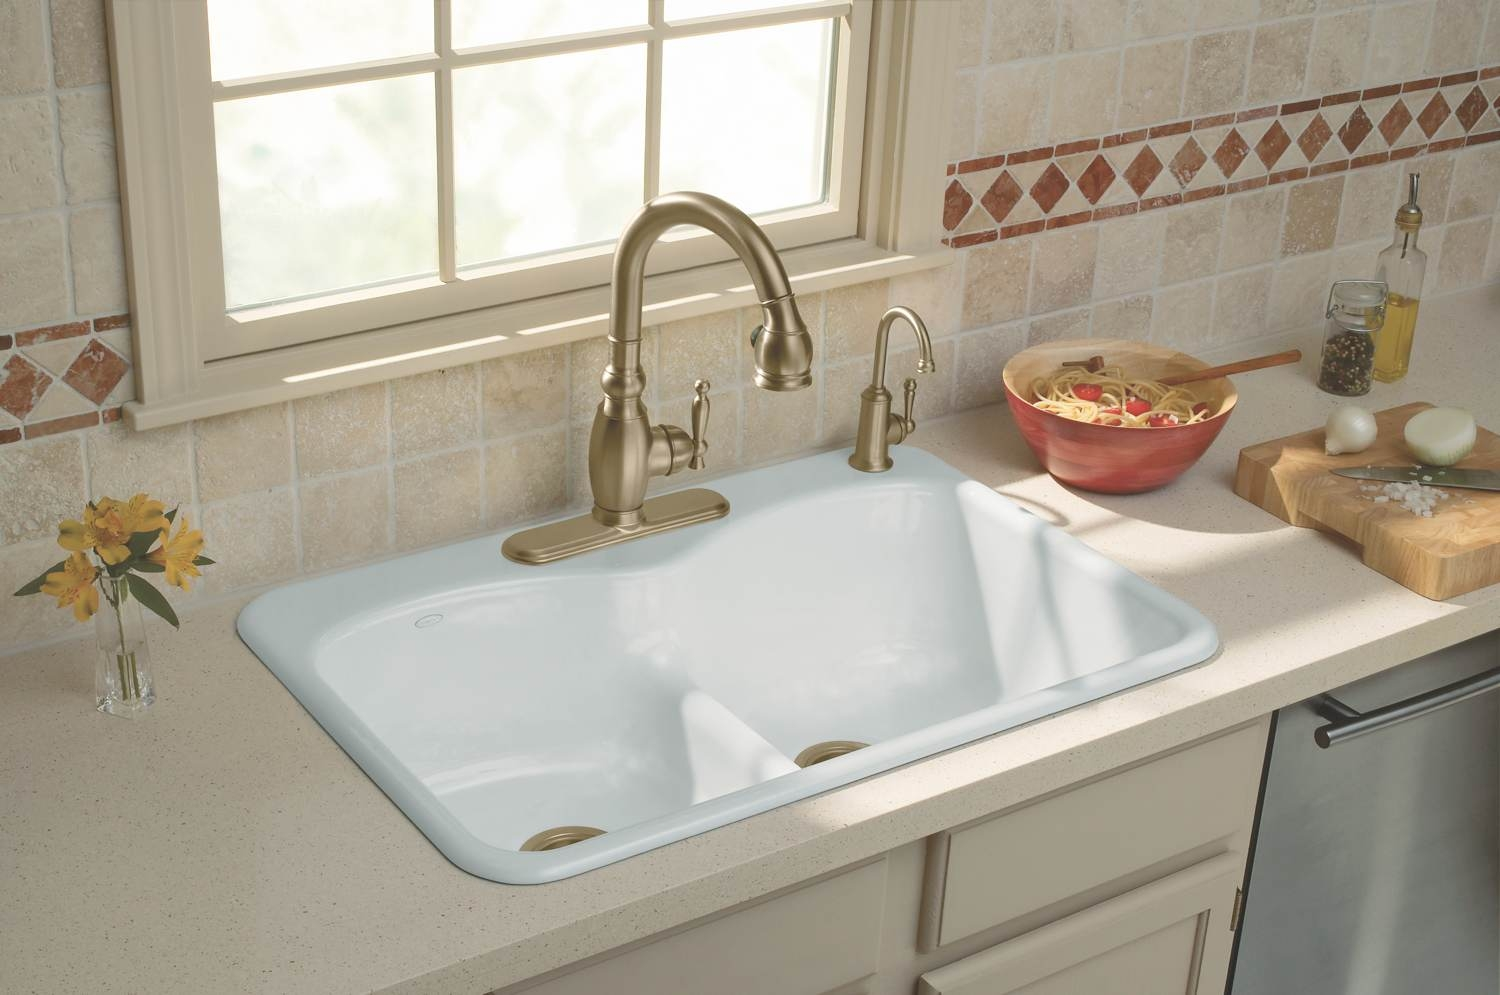 Ideas, kohler kitchen sink faucets white kohler kitchen sink faucets white modern kitchen island design with endearing mico faucets designs 1500 x 995  .